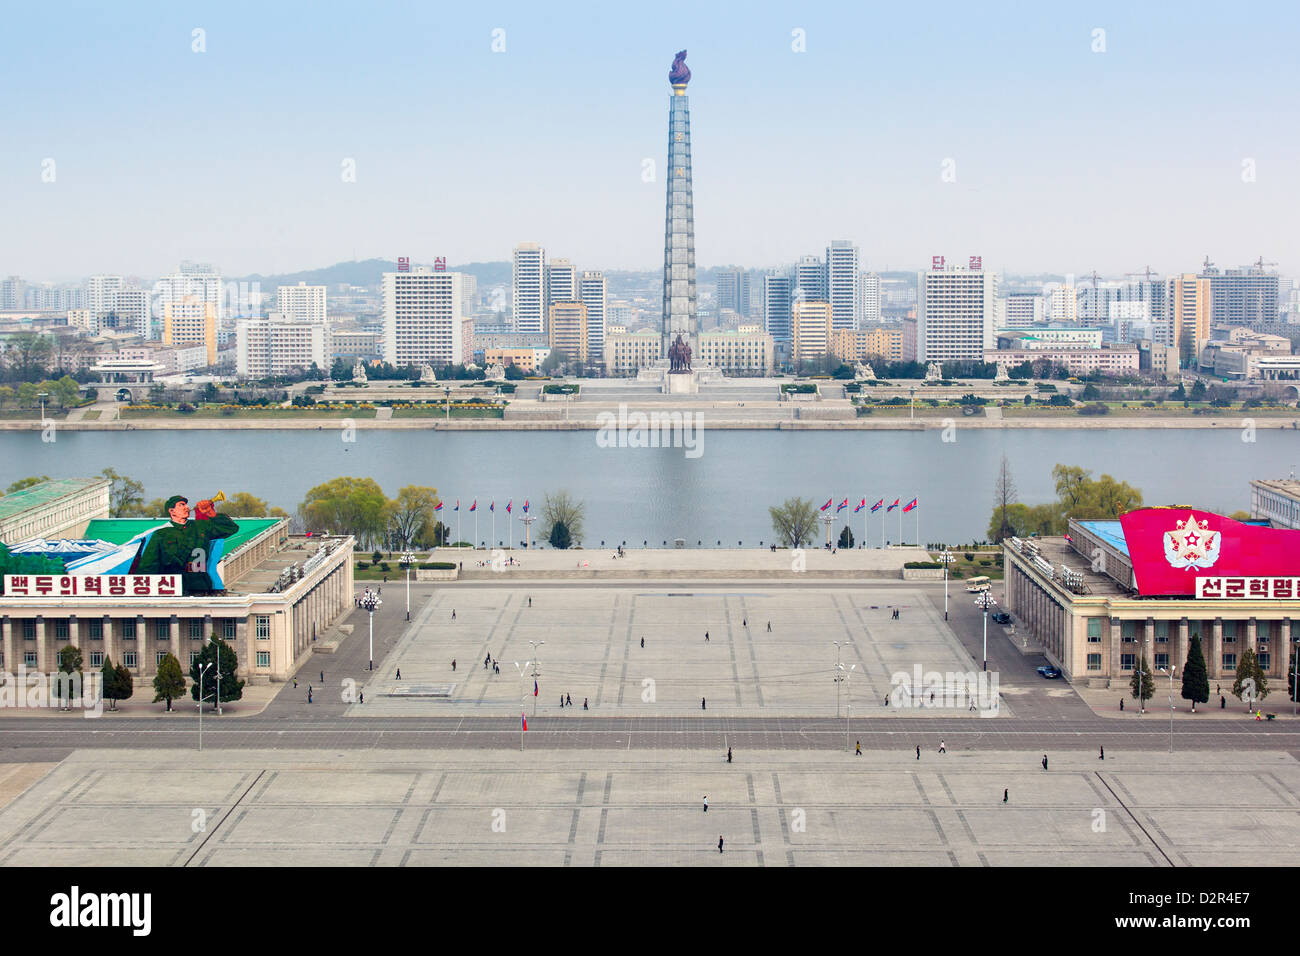 Elevated view over Kim Il Sung Square, Pyongyang, Democratic People's Republic of Korea (DPRK), North Korea, - Stock Image